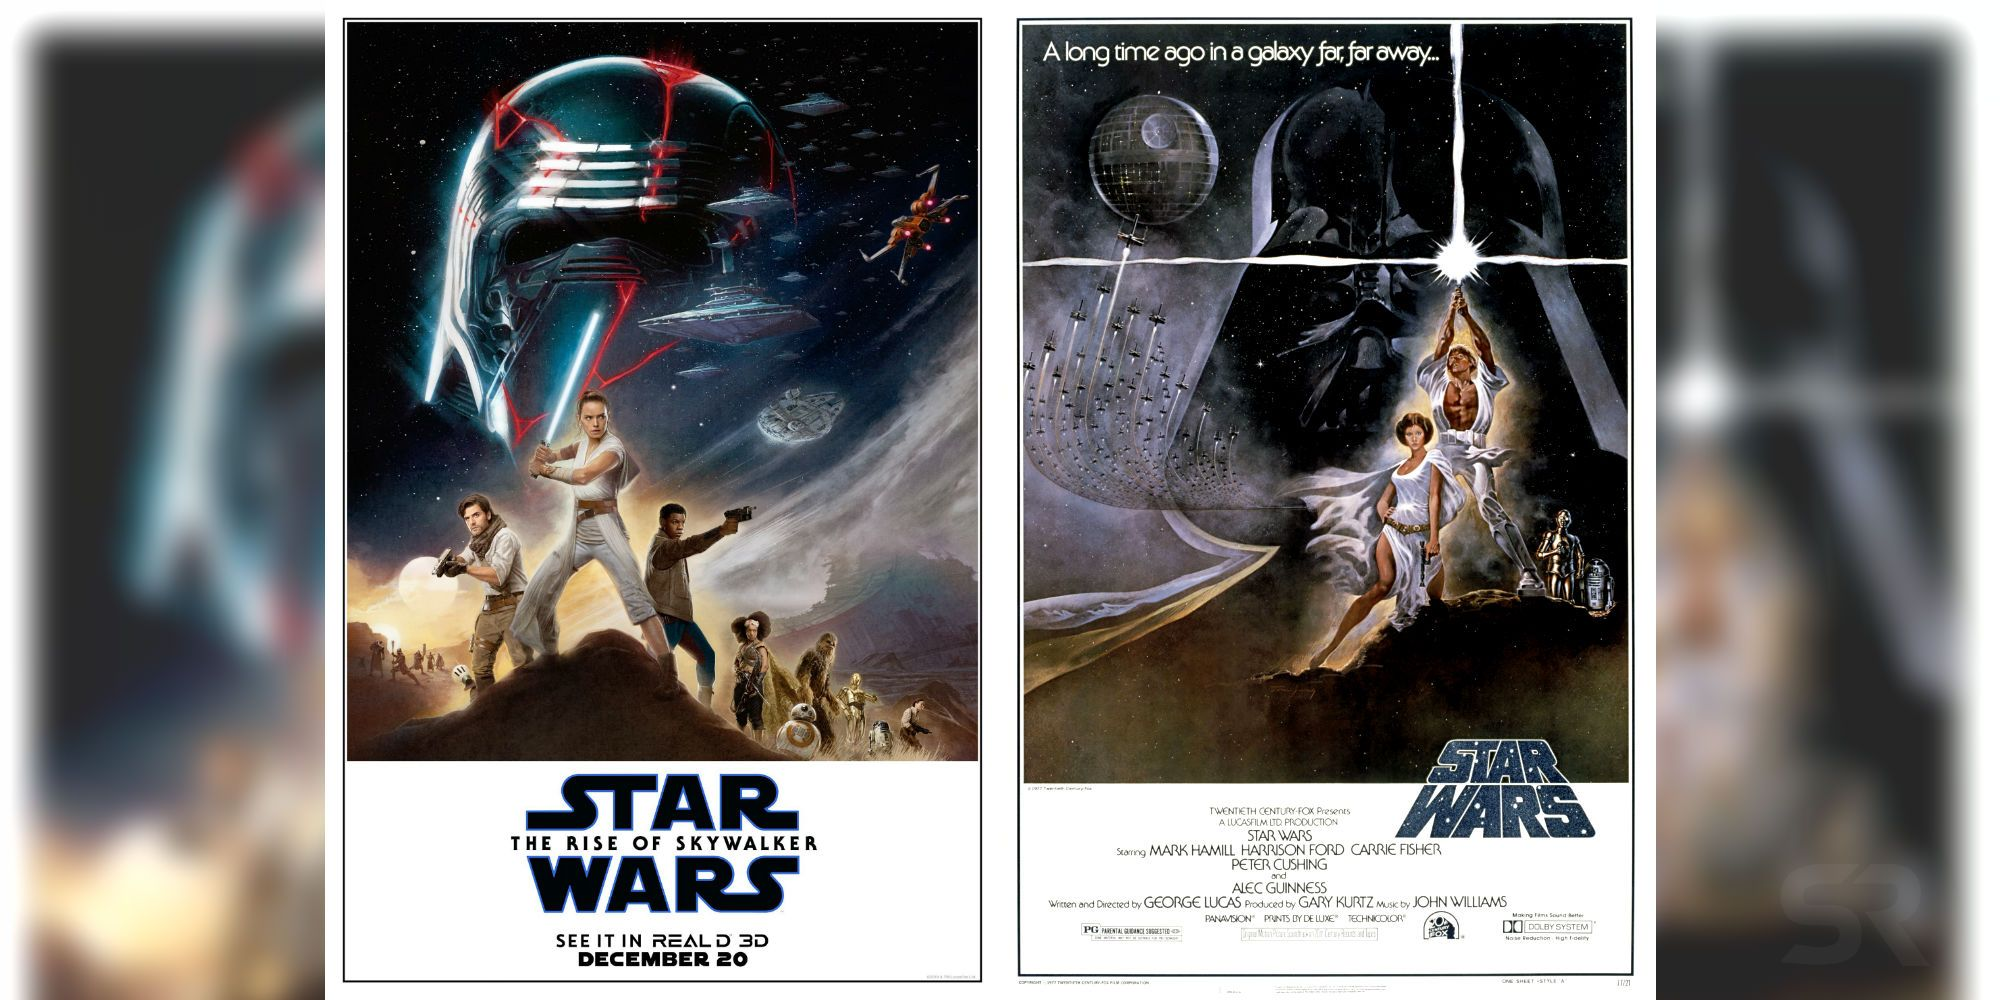 The Rise Of Skywalker Recreates Iconic Star Wars 1977 Poster